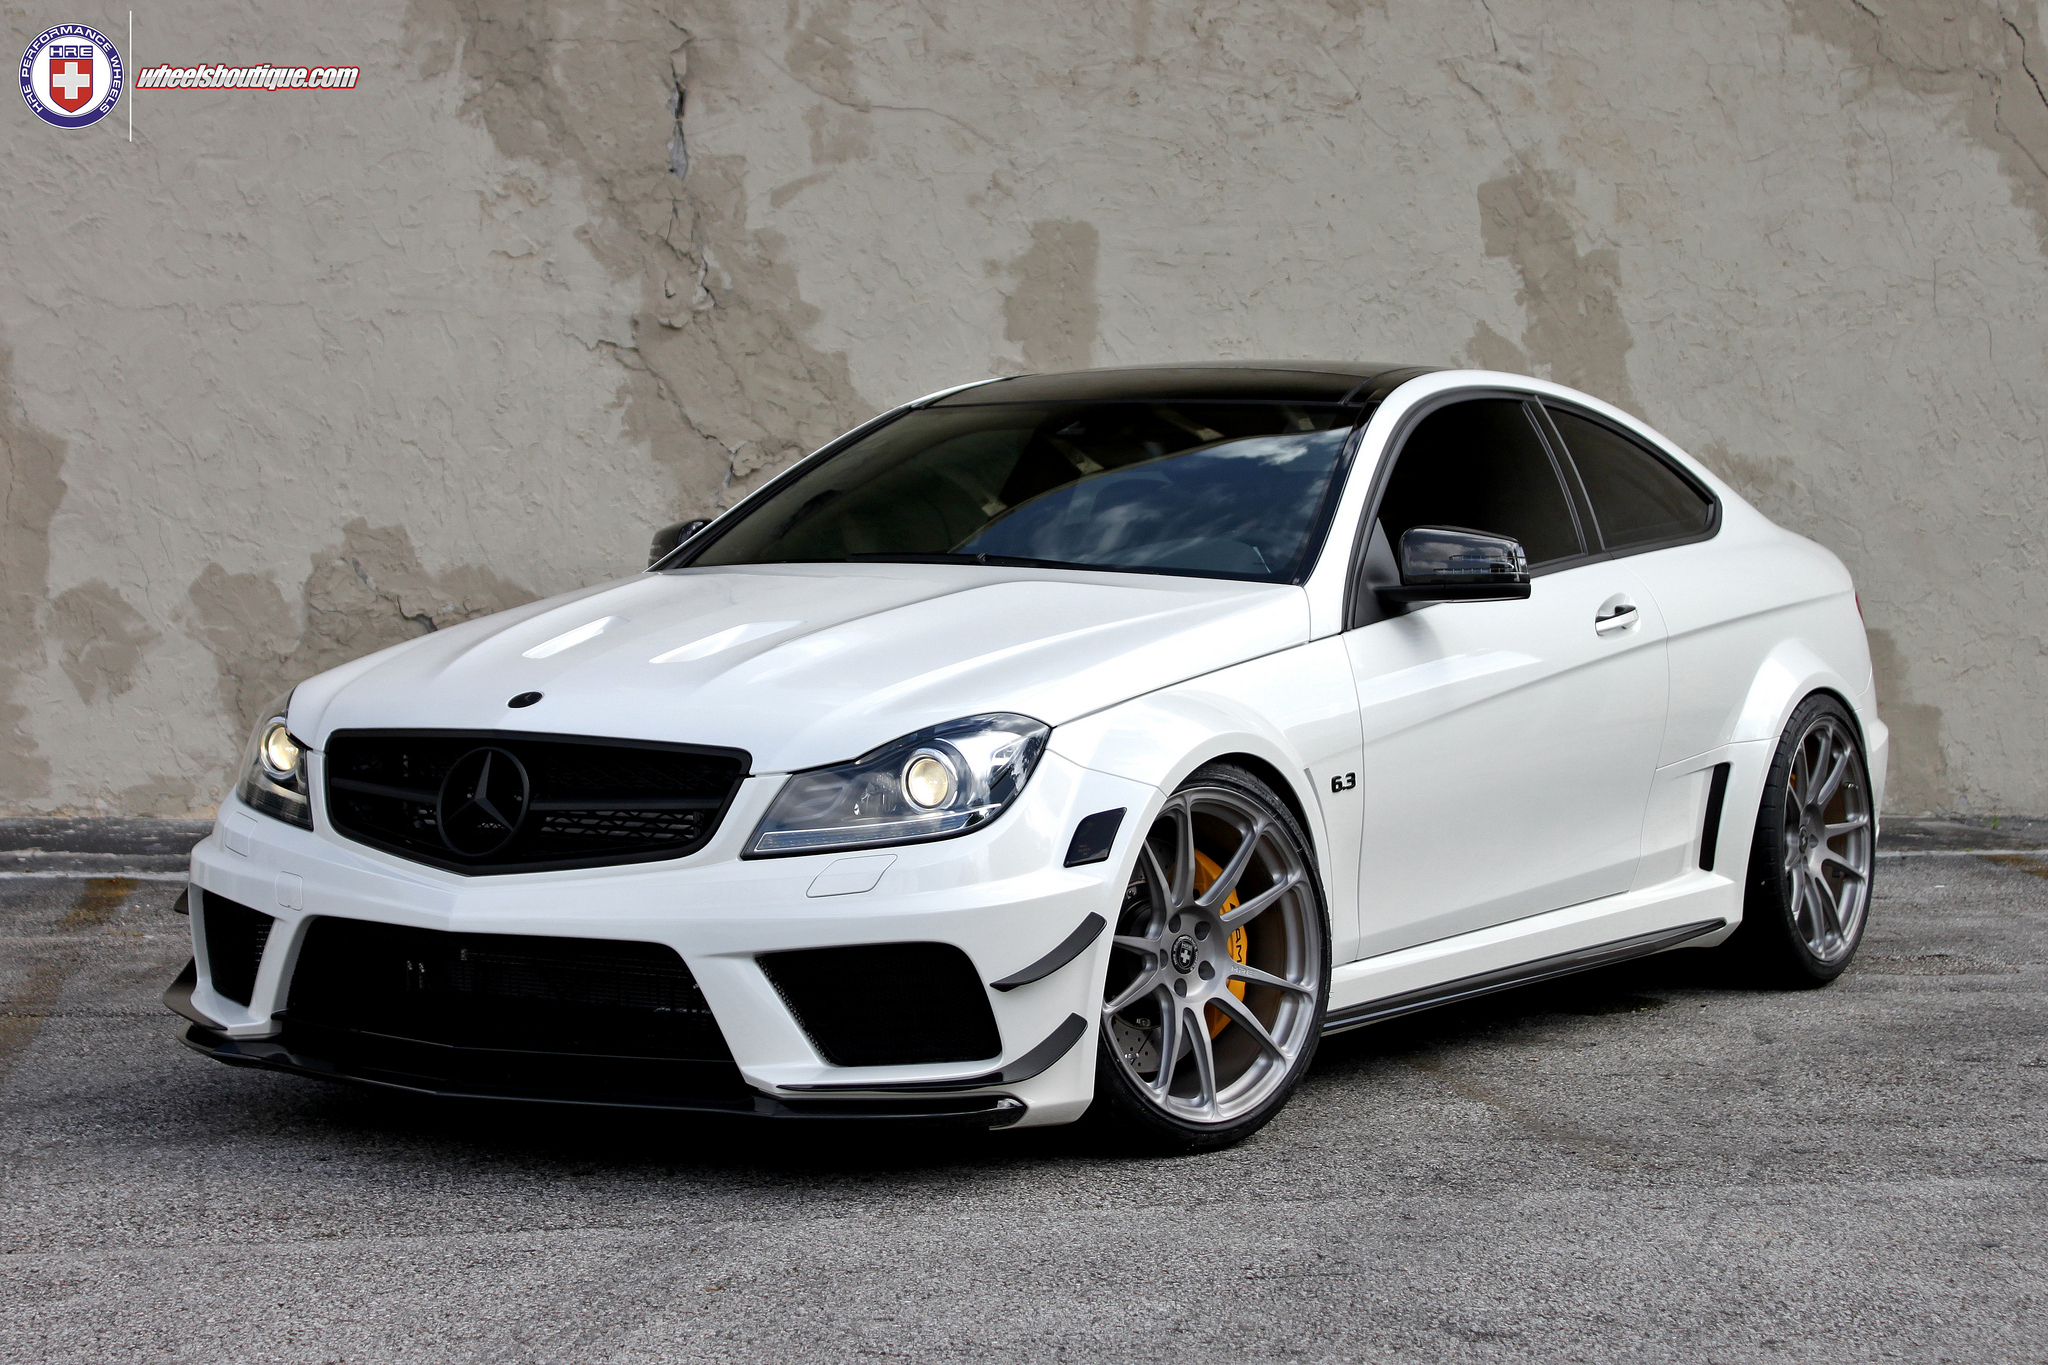 mercedes tuning wheels boutique hre tweaked c63 amg black. Black Bedroom Furniture Sets. Home Design Ideas